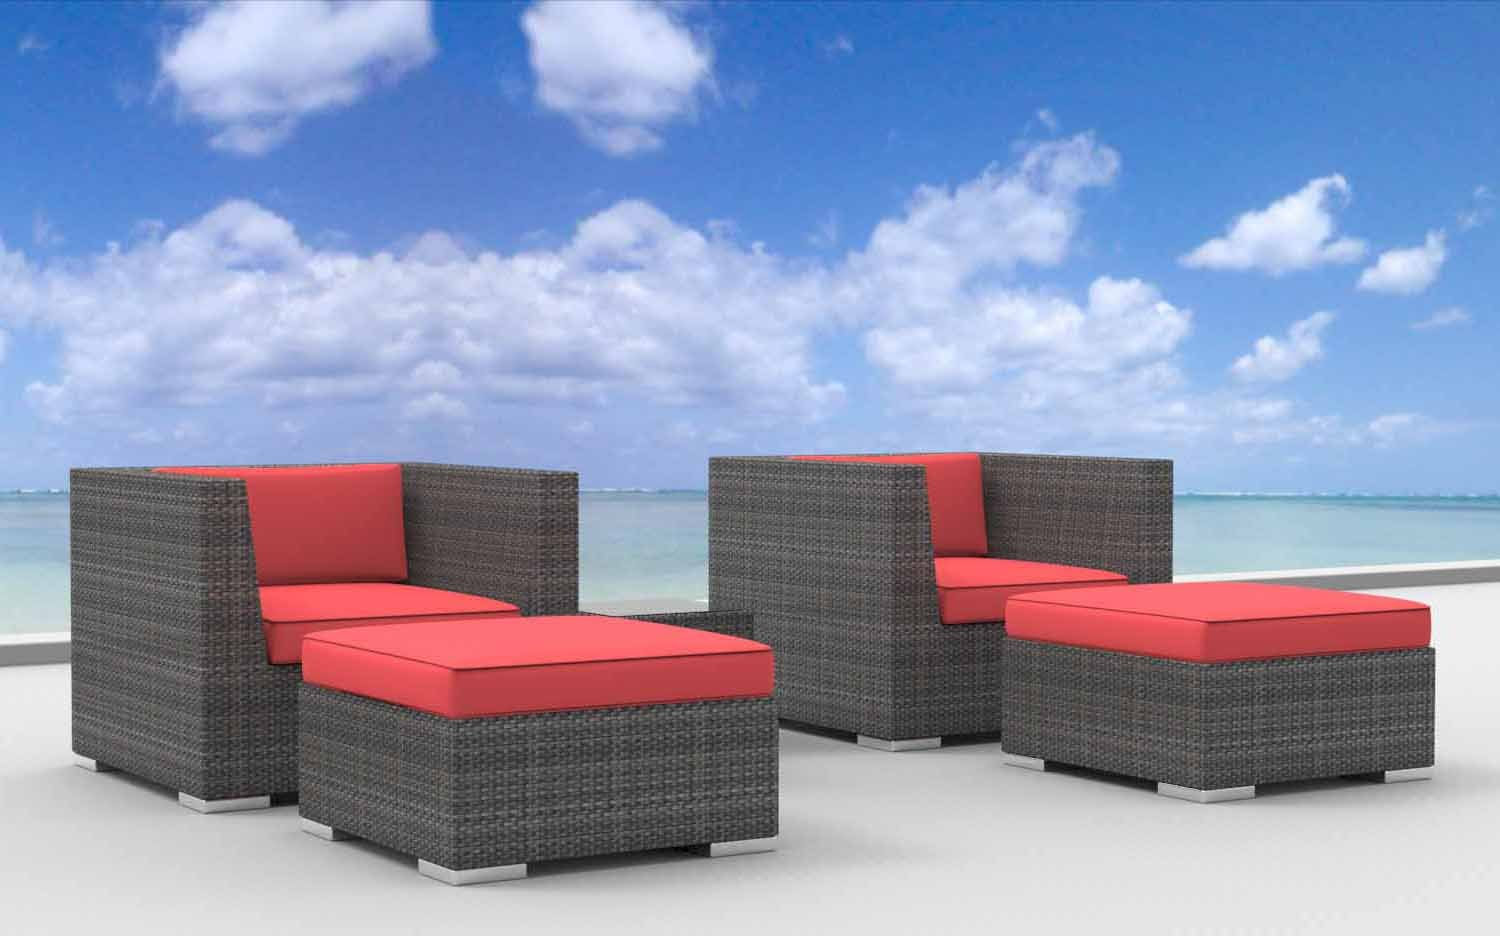 www.urbanfurnishing.net Urban Furnishing - Curacao 5pc Modern Outdoor Backyard Wicker Rattan Patio Furniture Sofa Chair Couch Set - Coral Red at Sears.com